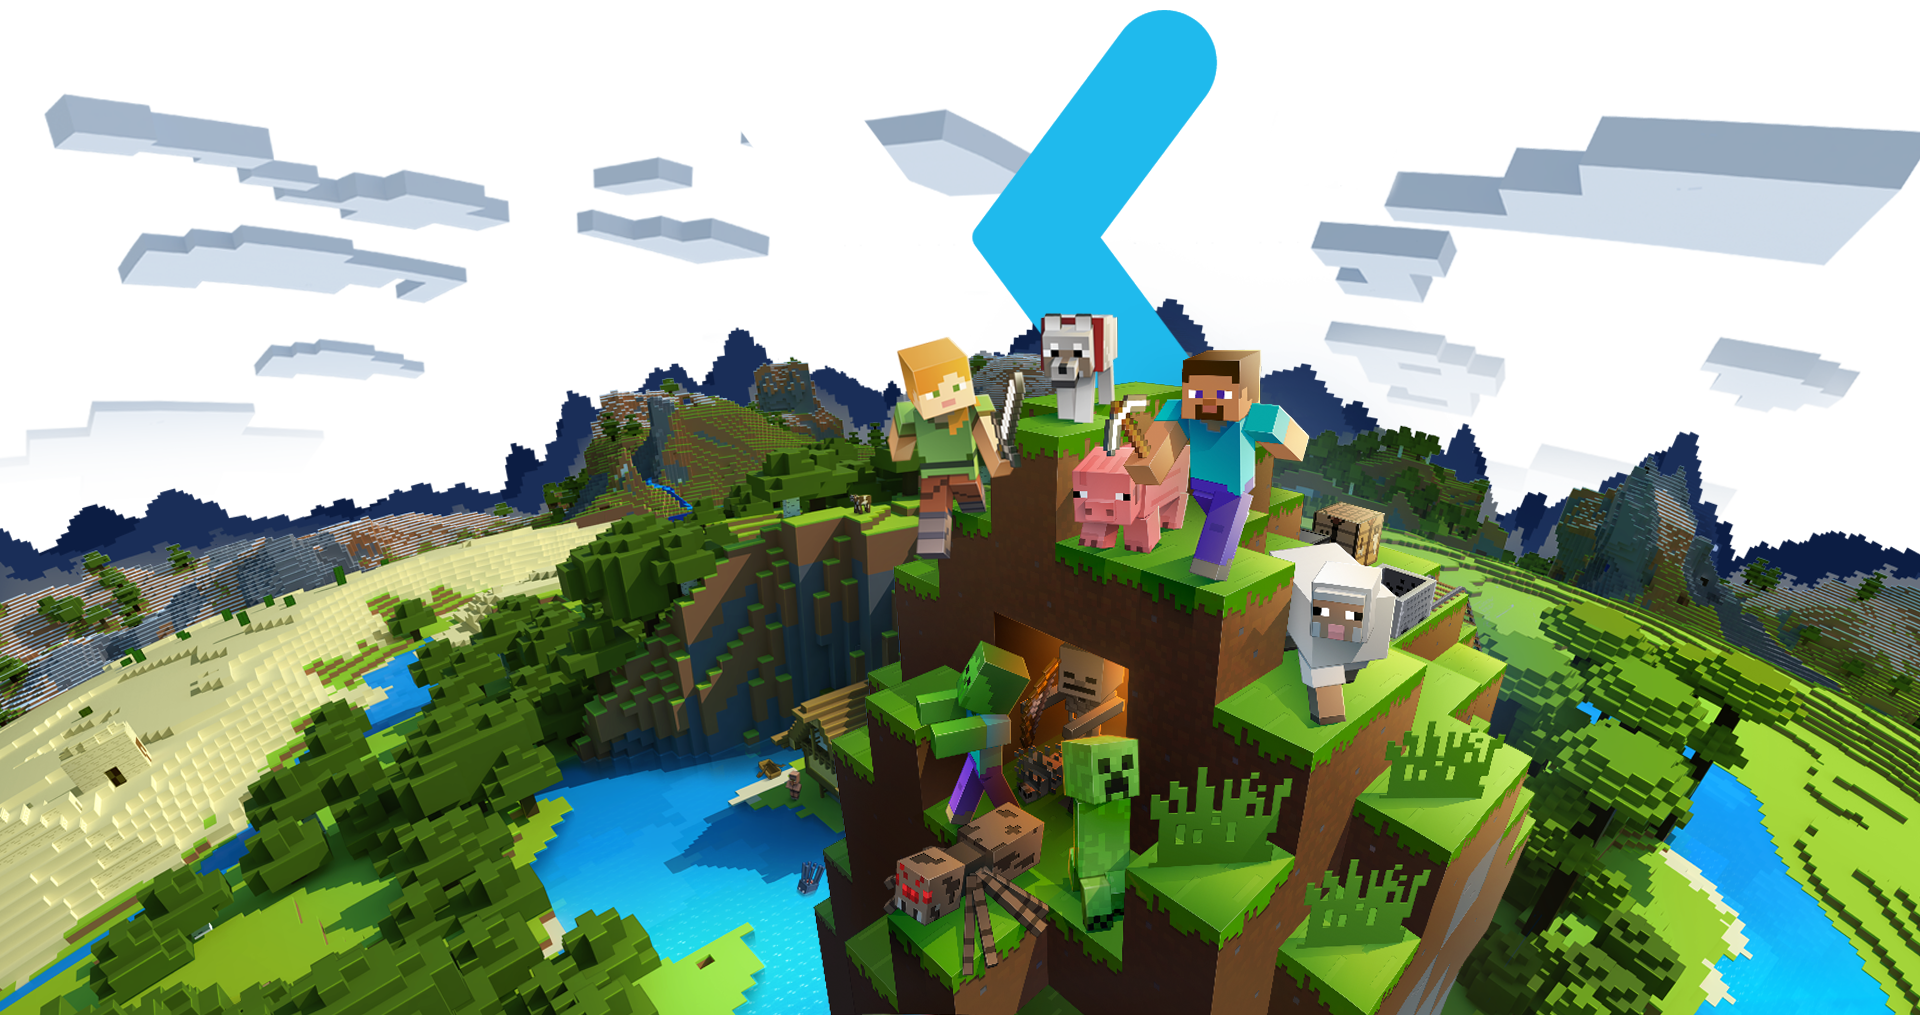 Mixer logo X behind a Minecraft globe image with assorted Minecraft characters on top